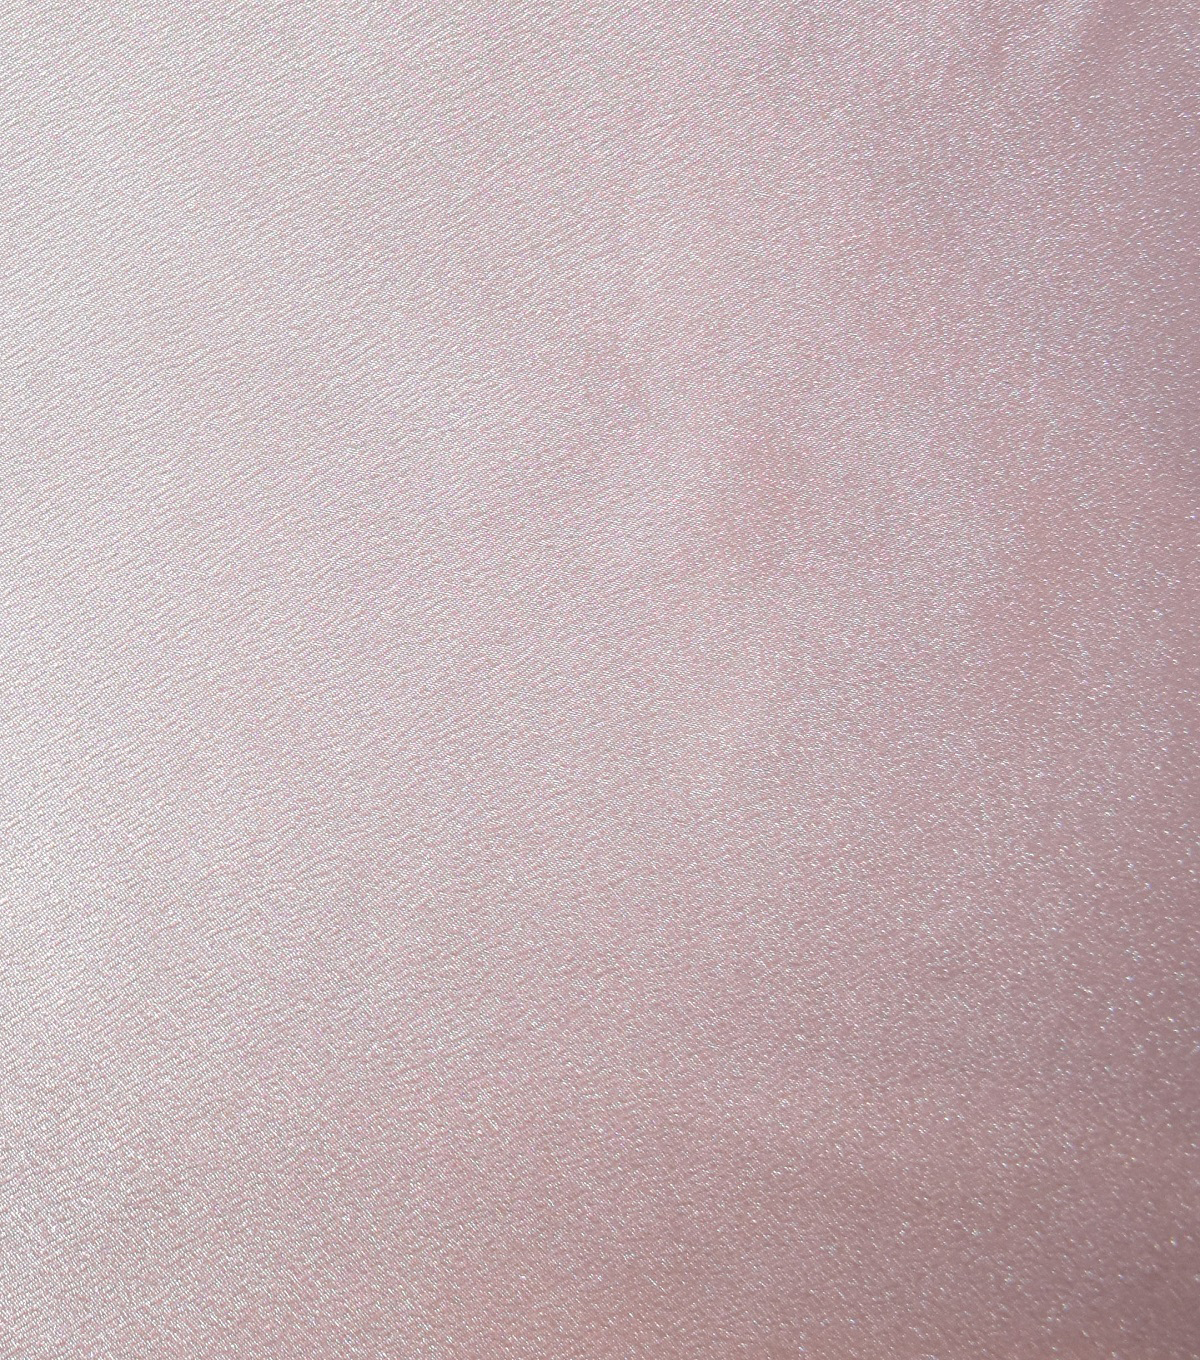 Casa Dahlia Crepeback Satin Fabric-Solids, Peach Blush